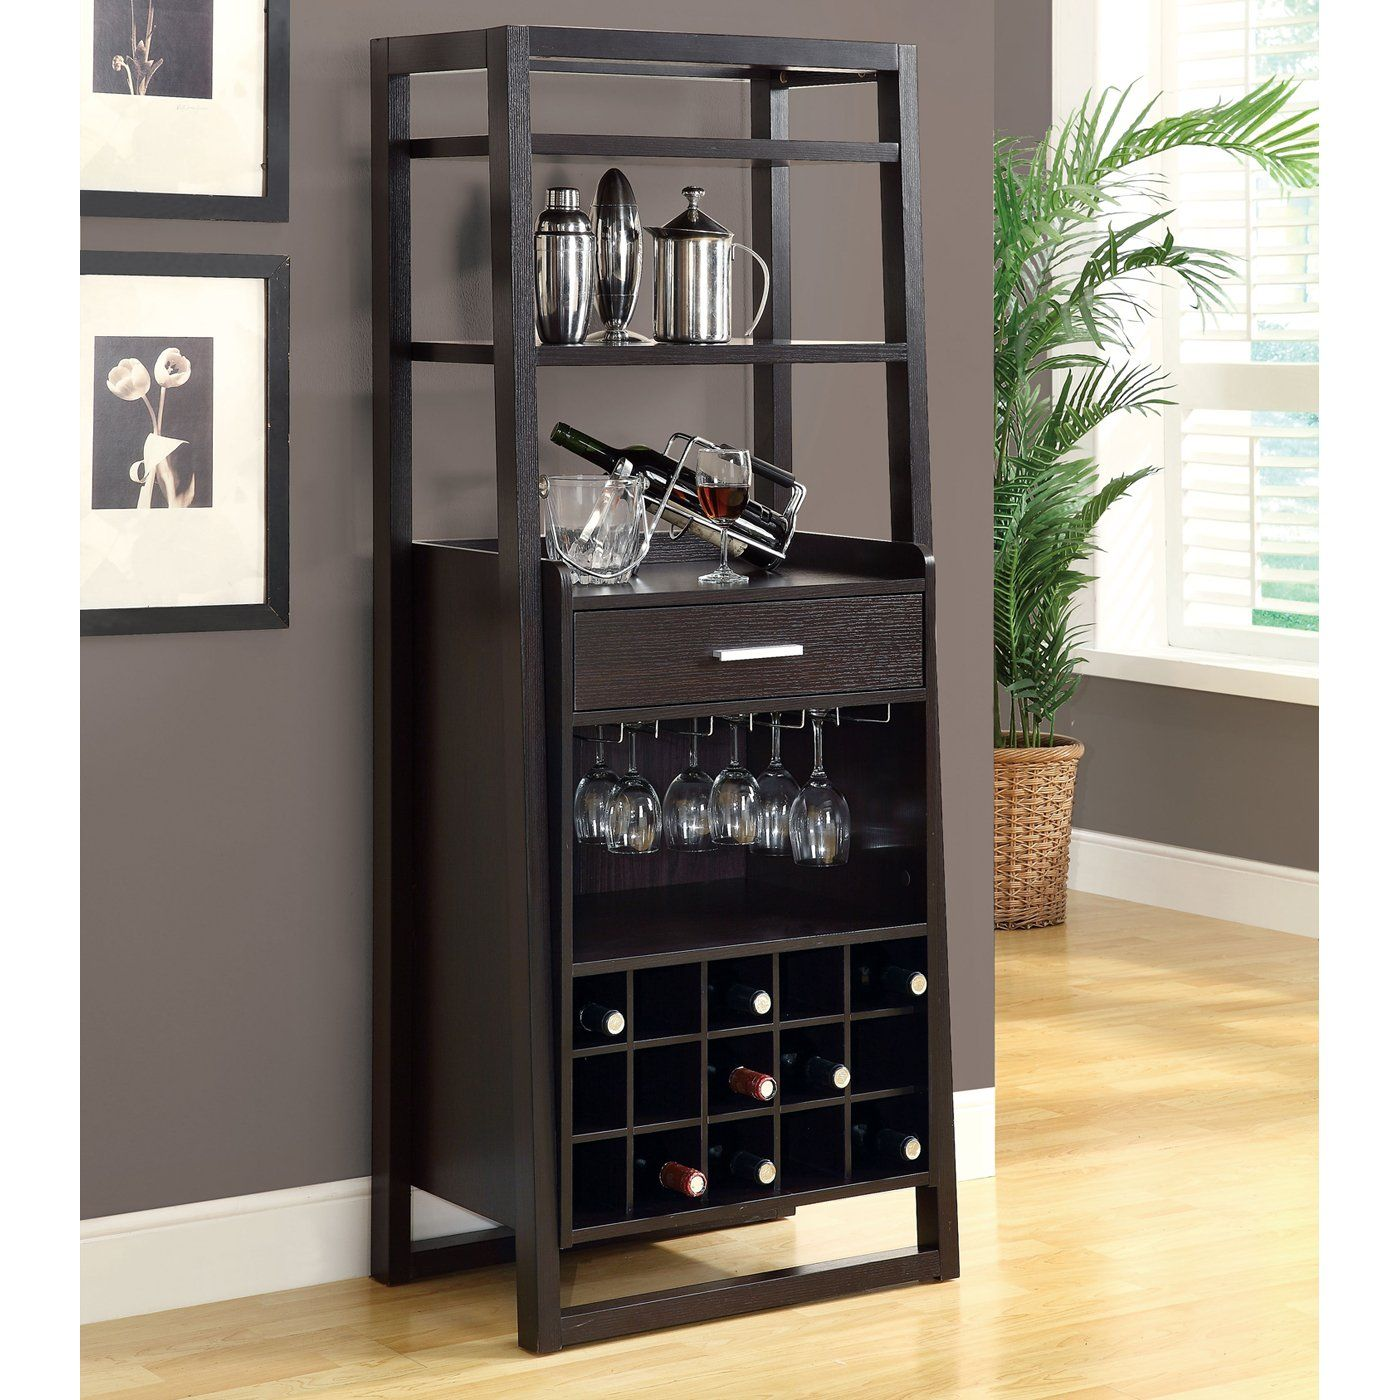 Monarch specialties i ladder style bar cabinet ideas for the